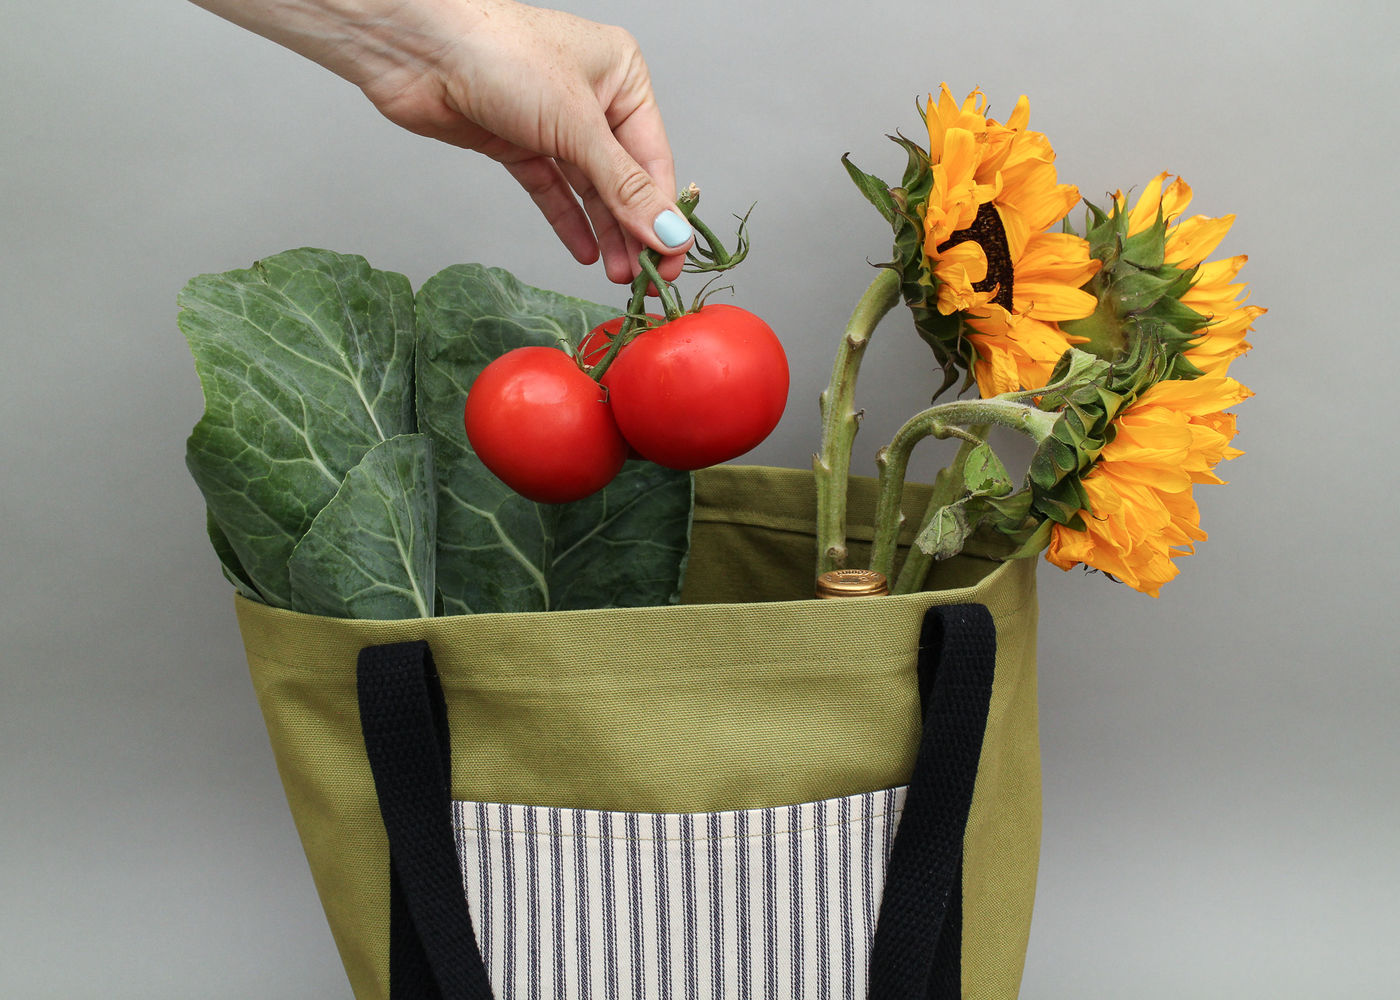 Project: Finish the Grocery Bag